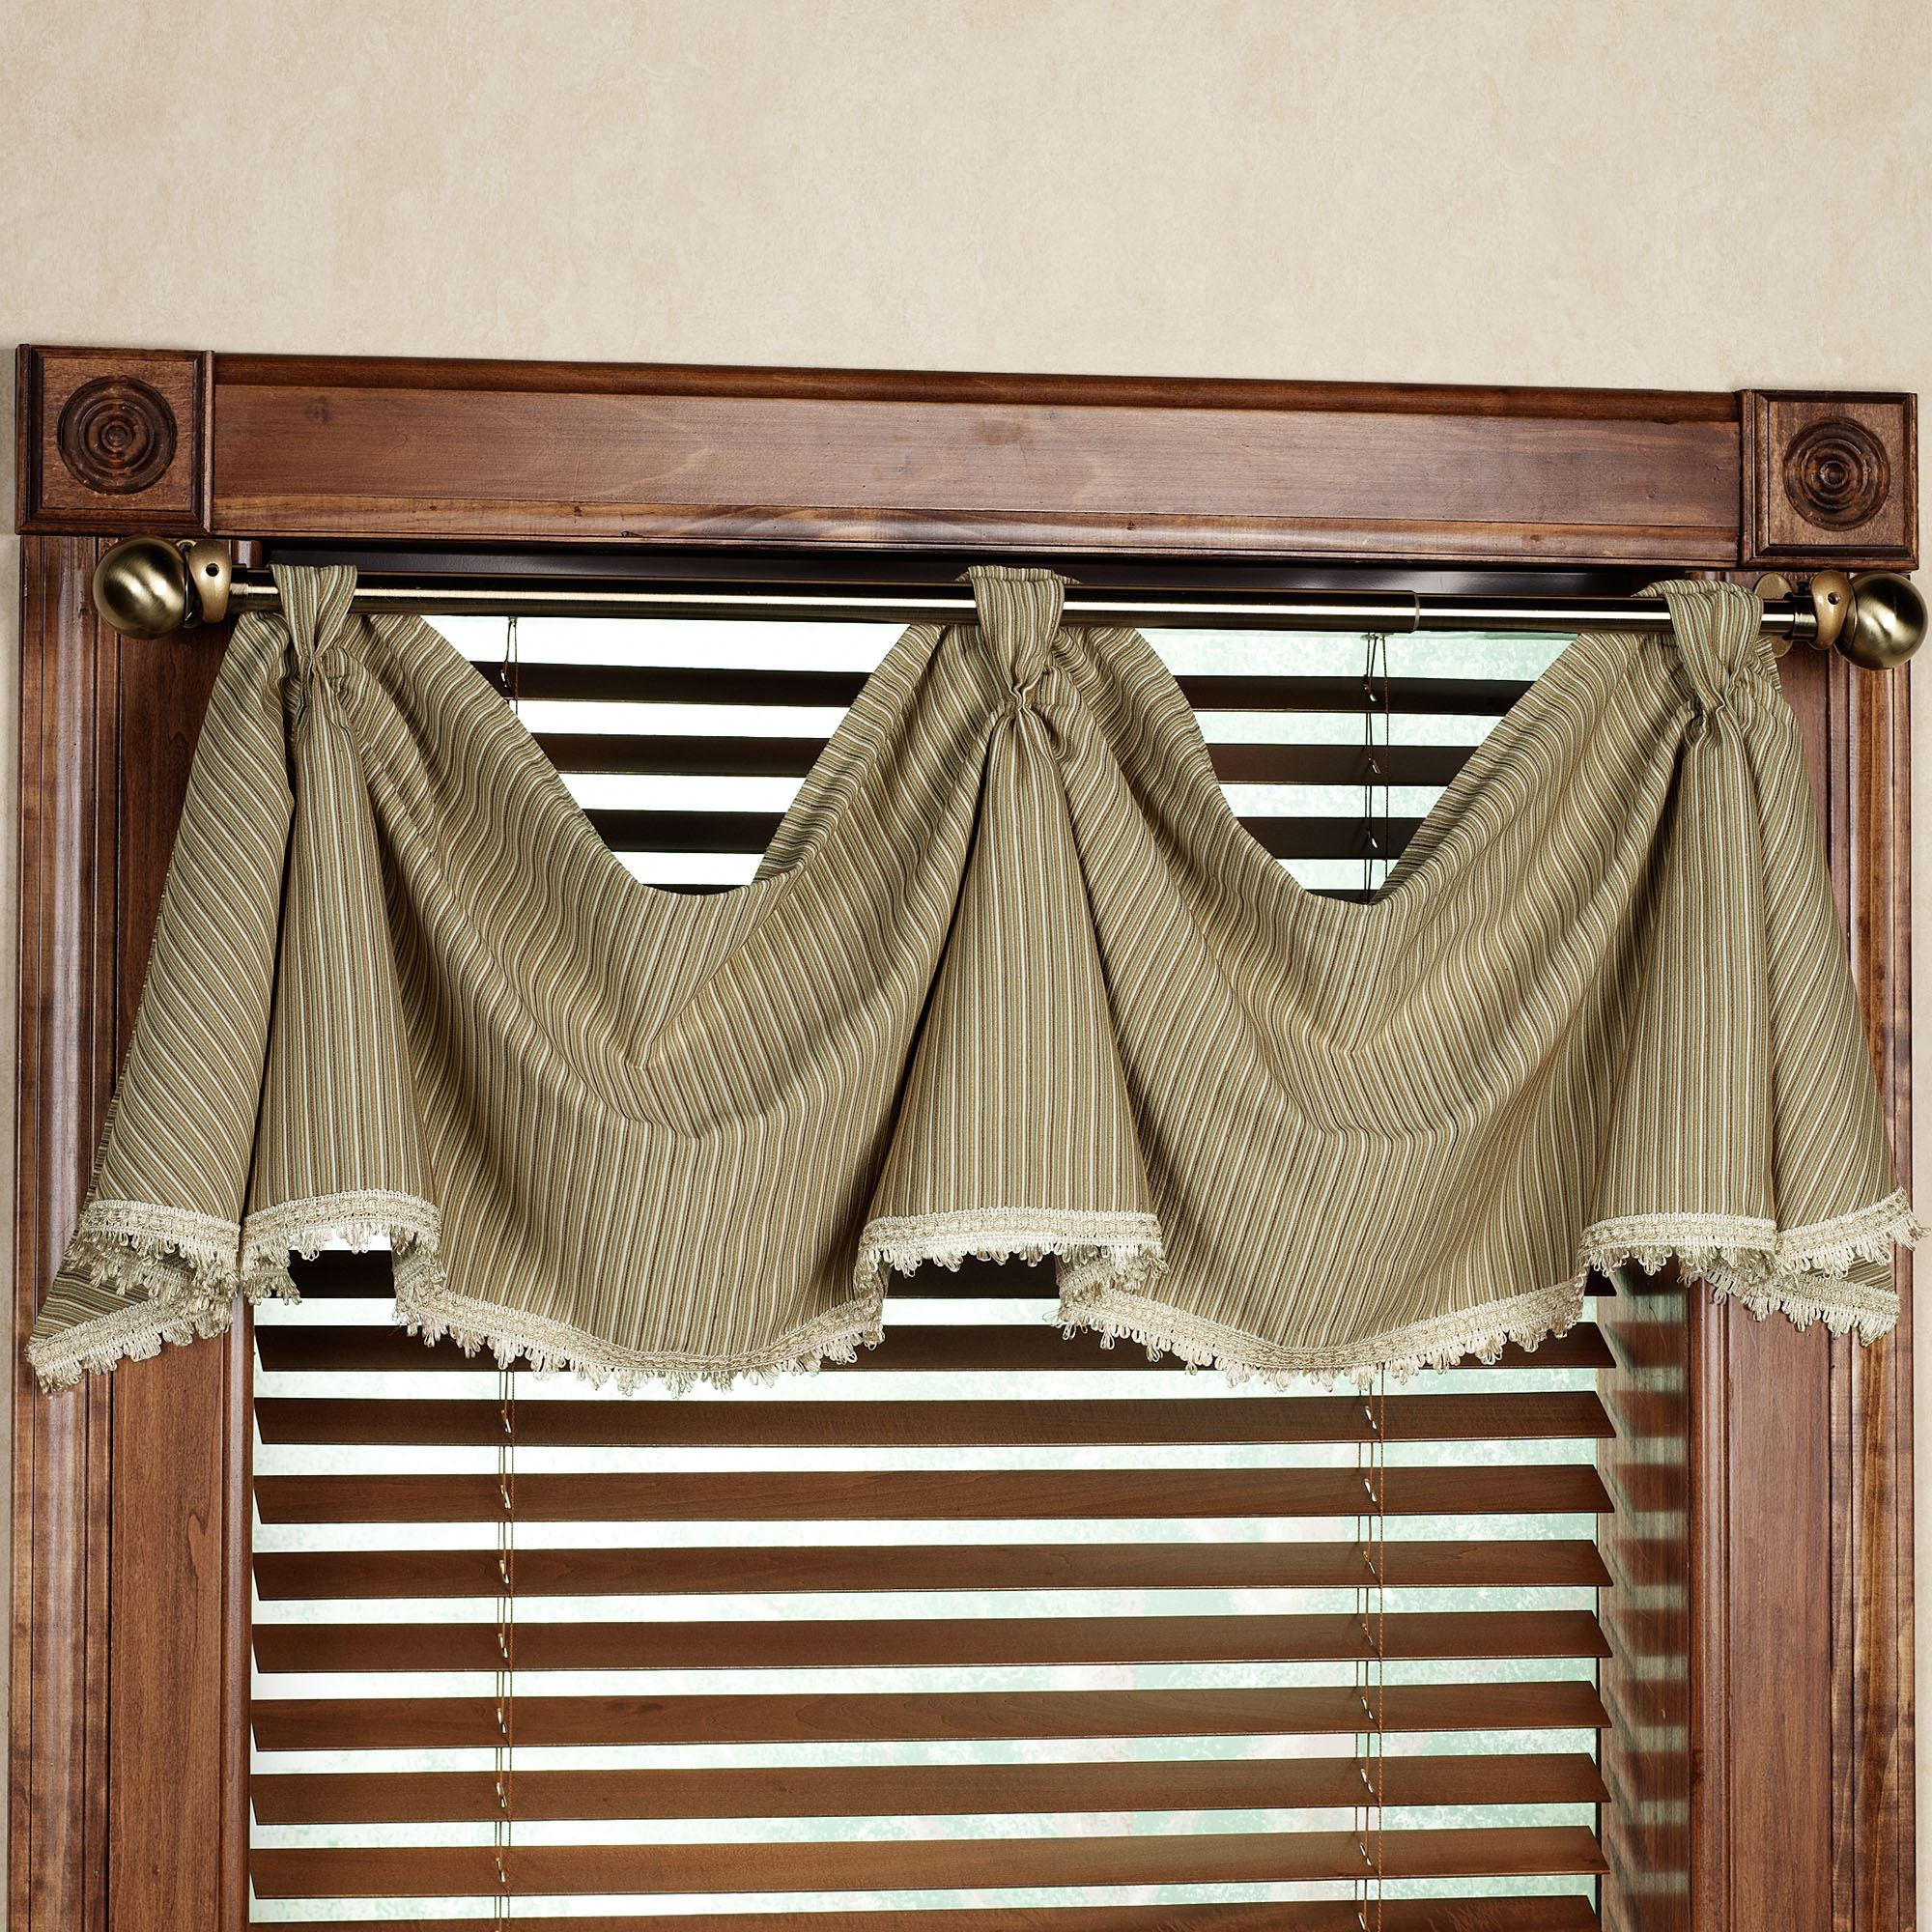 expand to fabric valances blinds aluminum made sheer window curtain bathroom click tier coverings size curtains treatments interior panel photo valance ideas skylight for full different retailers palladium drapery shutters shades best privacy custom kitchen vertical tuscany grape and design of set